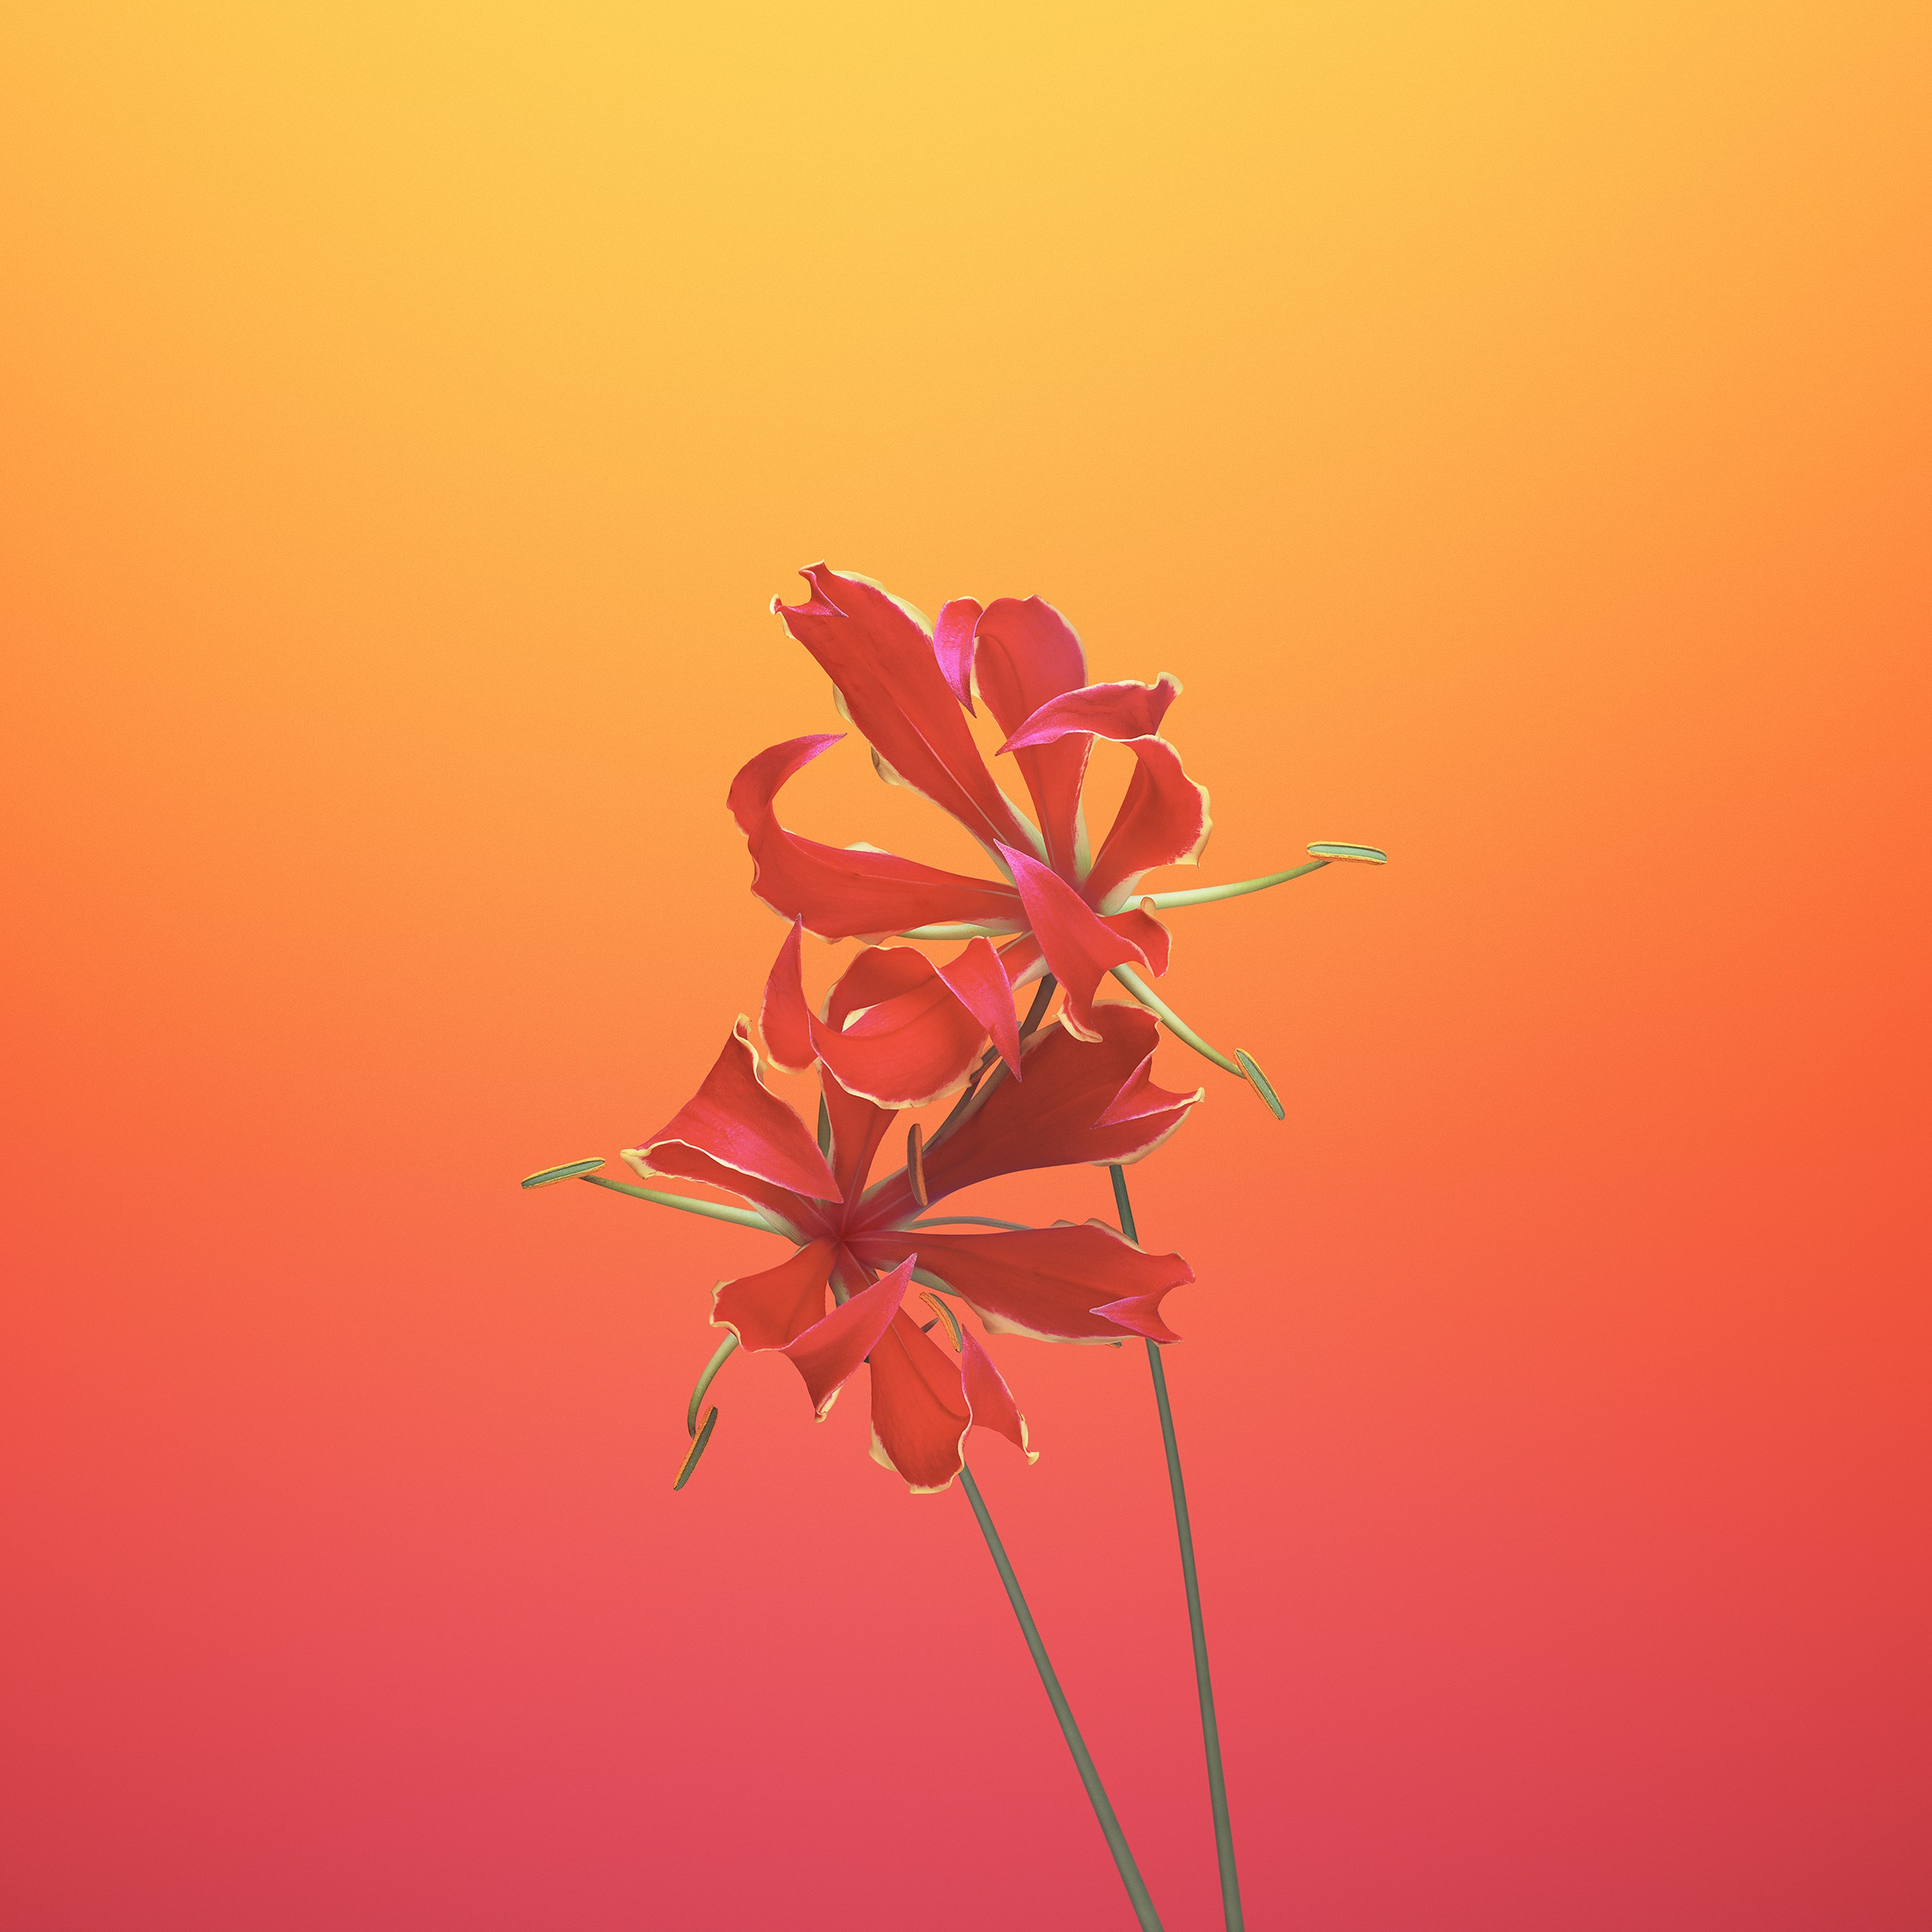 Wallpaper IPhone X Wallpapers, IPhone 8, IOS11, Flower